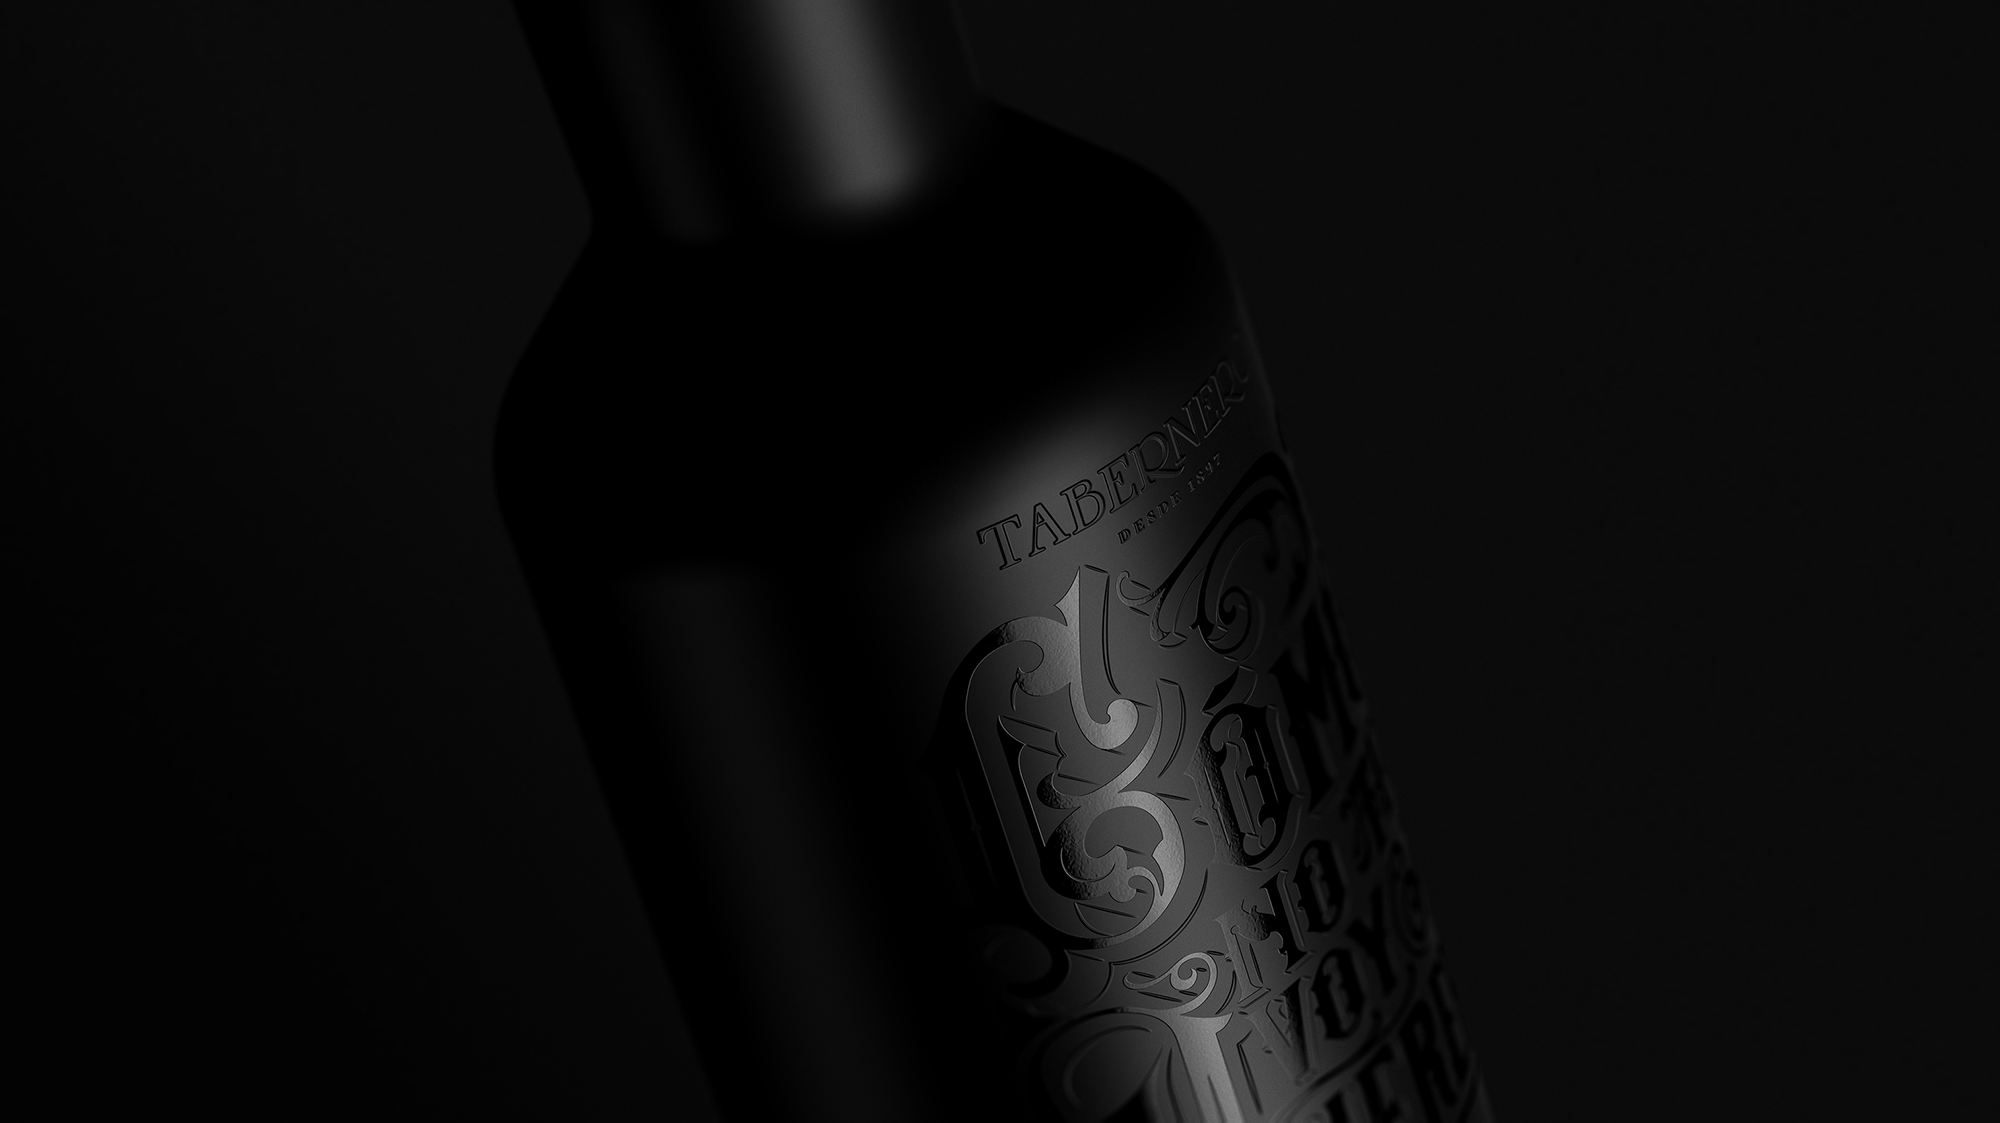 Tabernero Shows that Even Their Pisco has a Dark Side